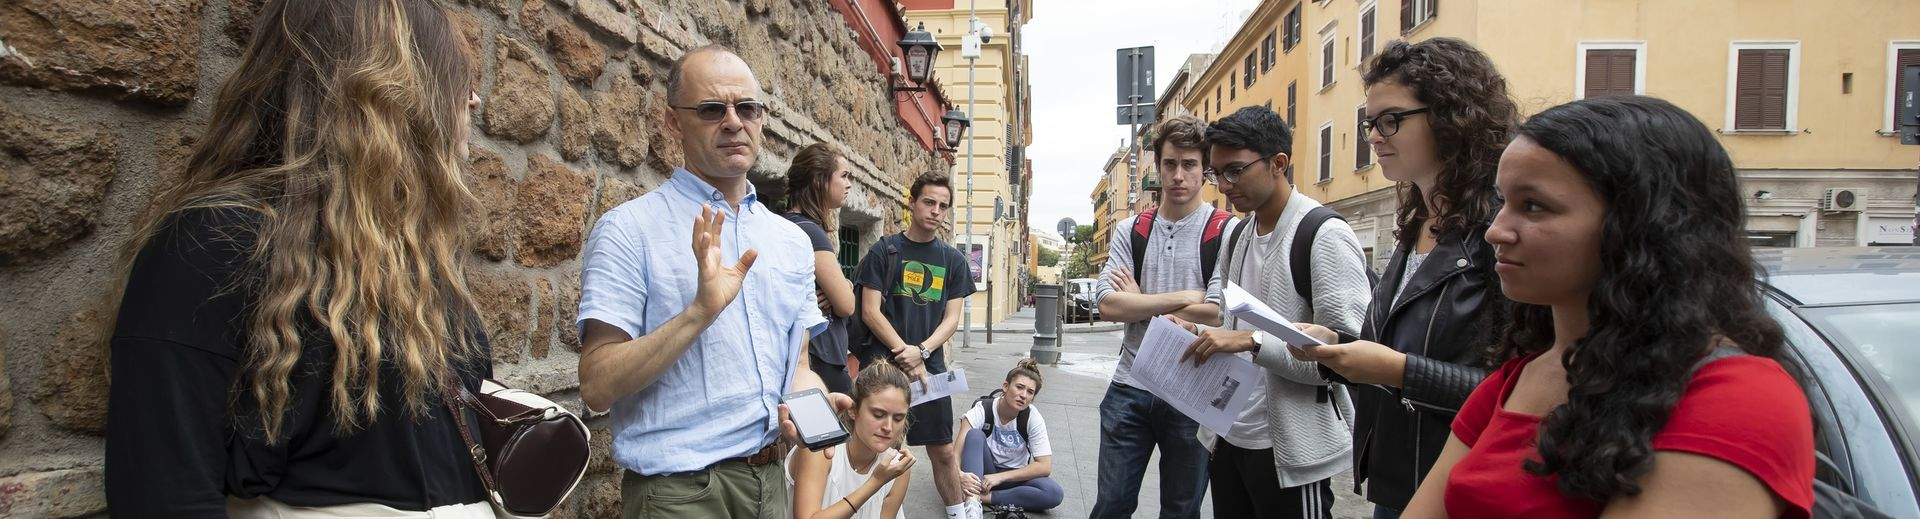 A Temple professor addresses students during a study away program in Rome.